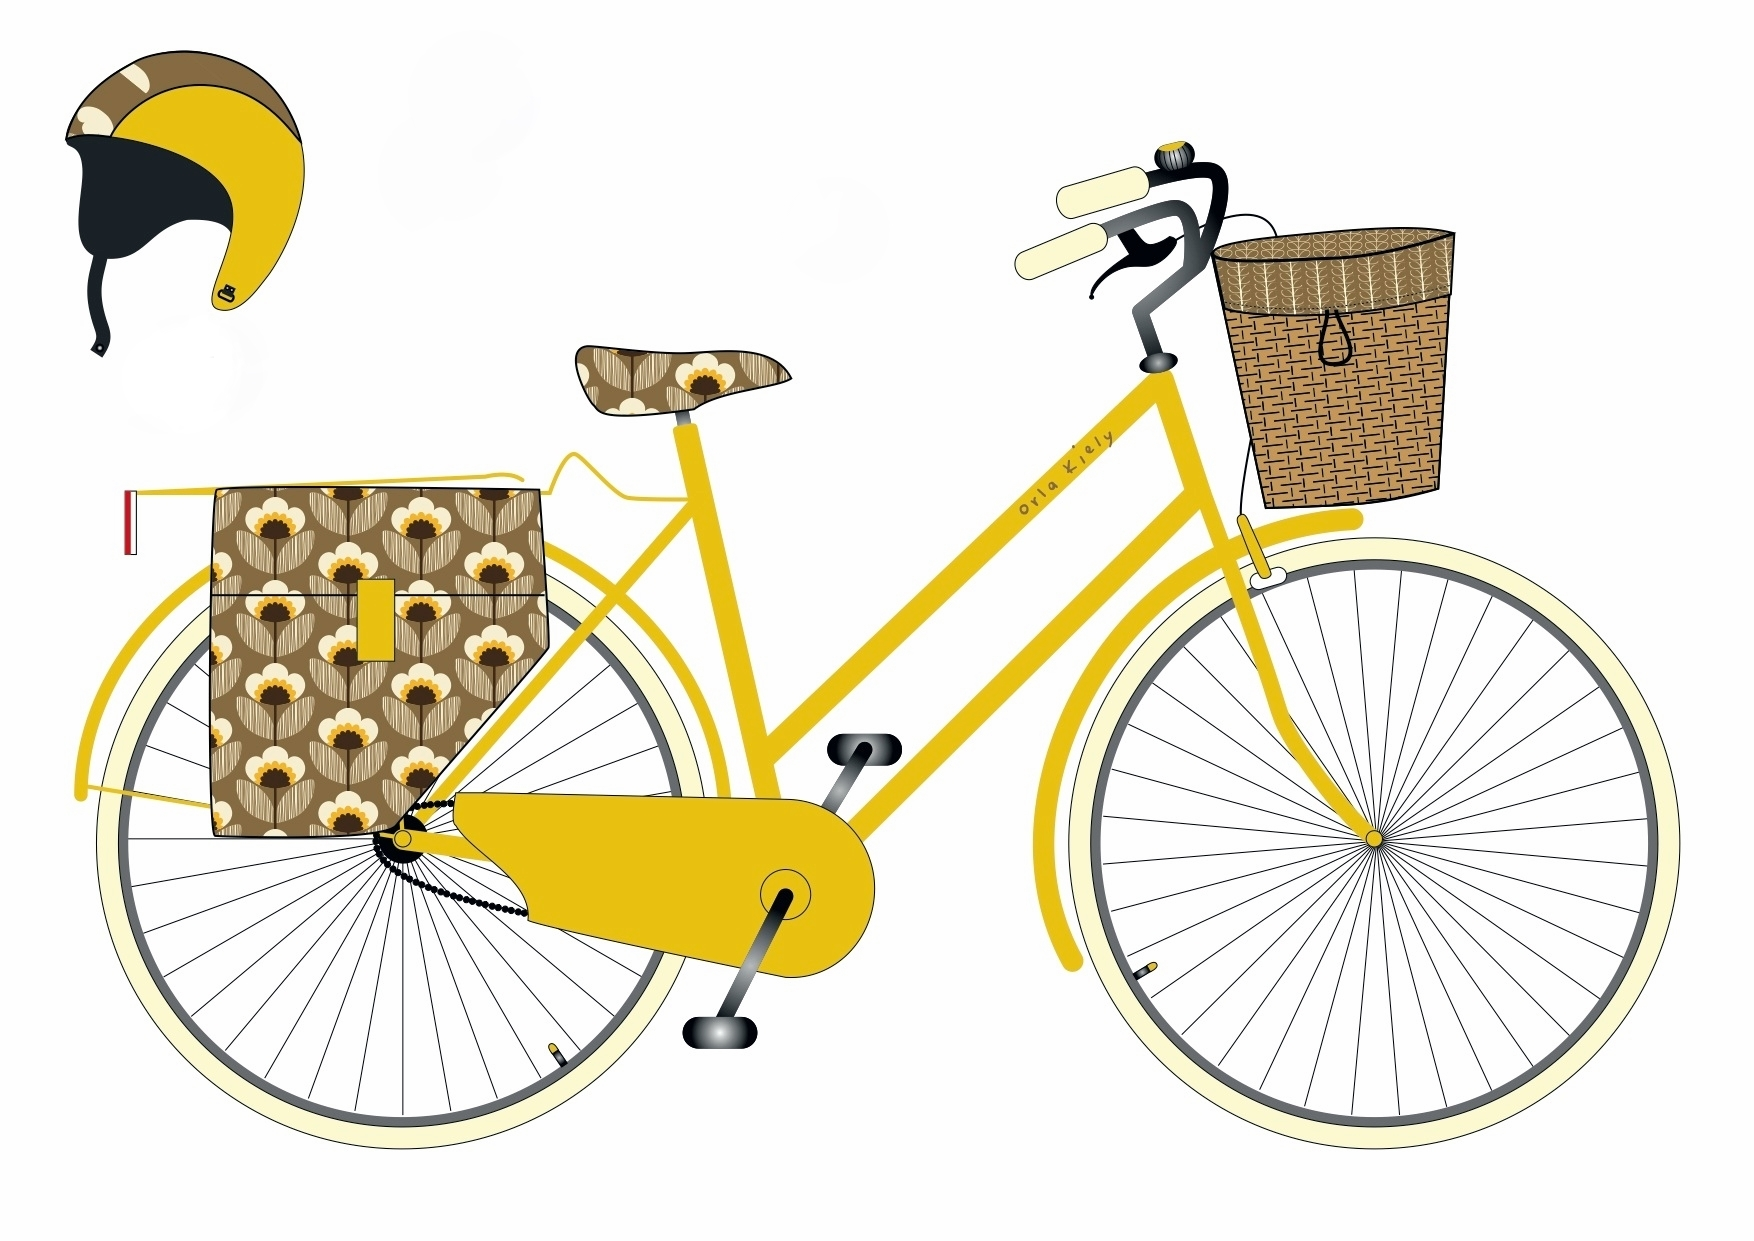 orla_kiely_dream_bike_sketch